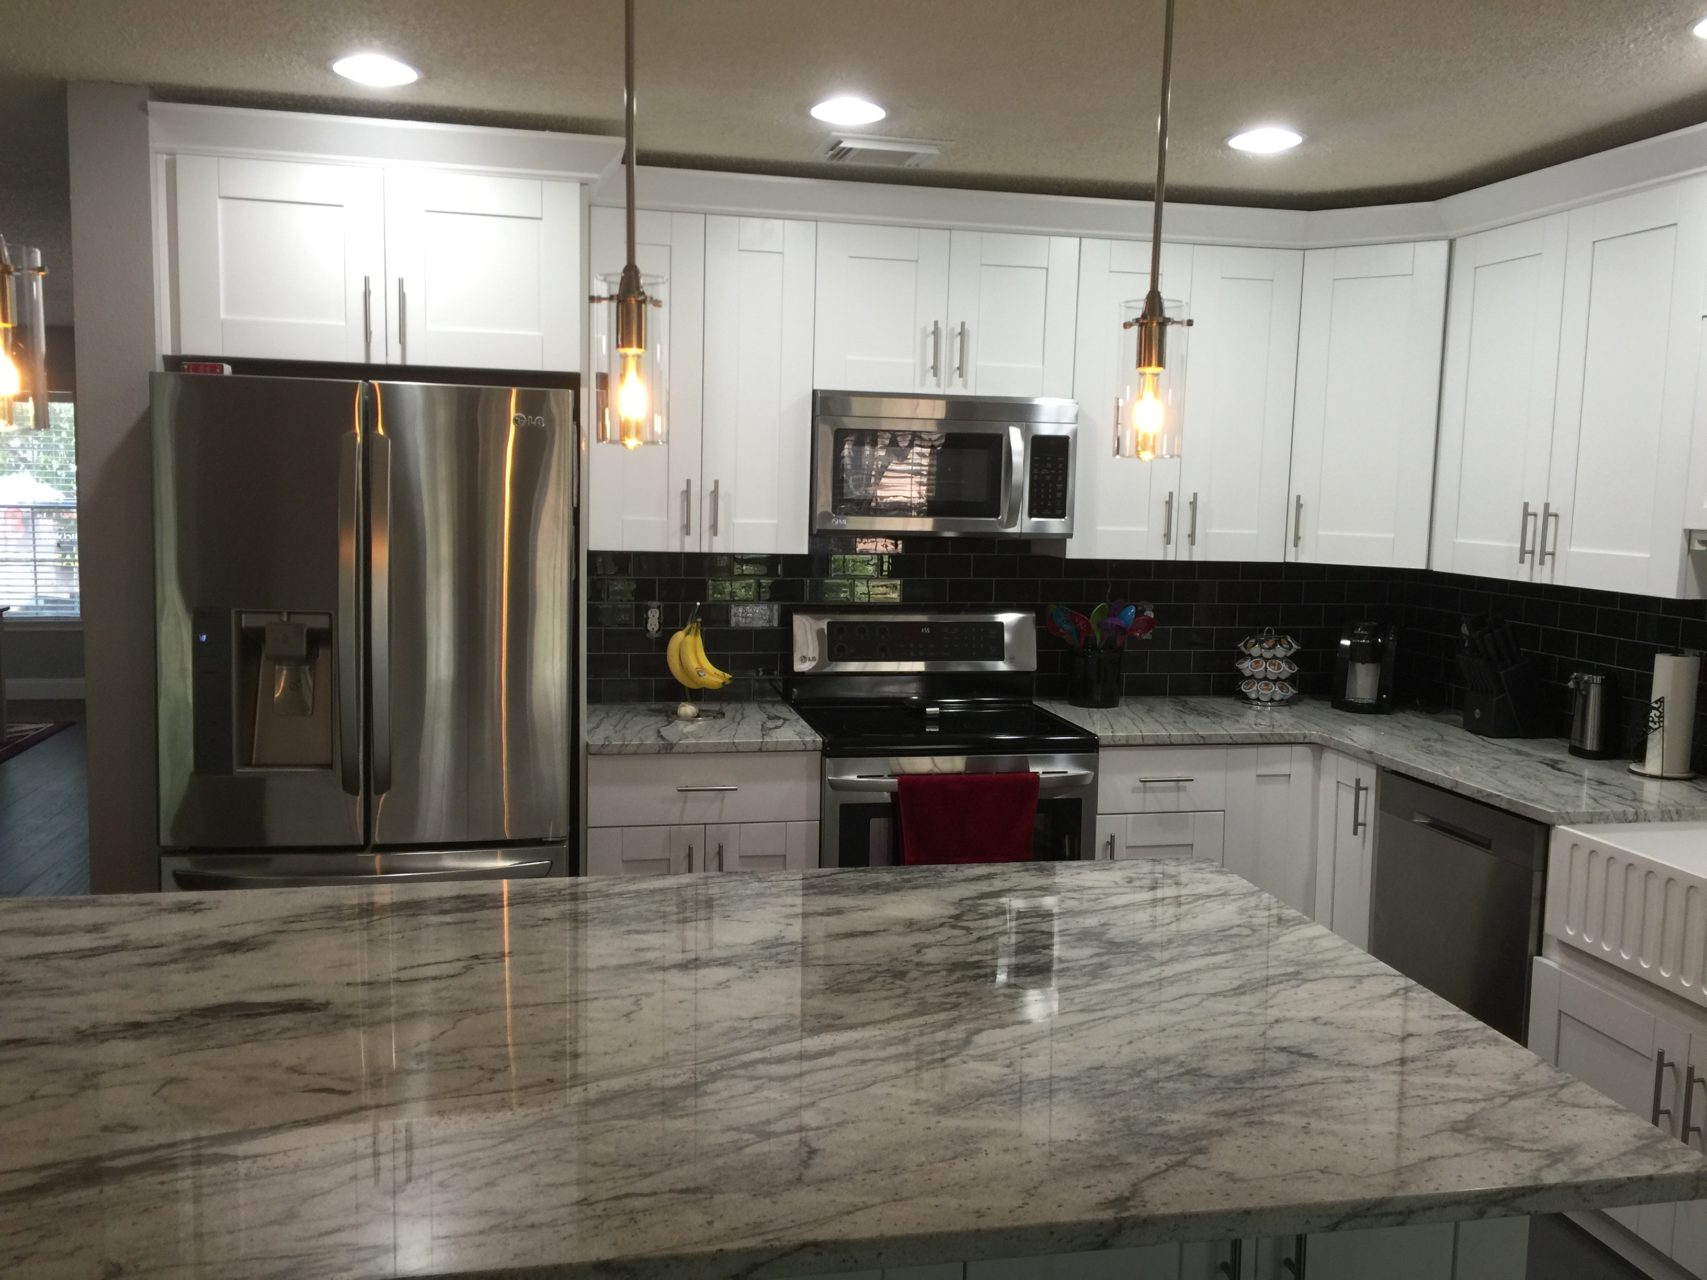 Shavano Park Kitchen Remodeling Project San Antonio Kitchen Cabinets